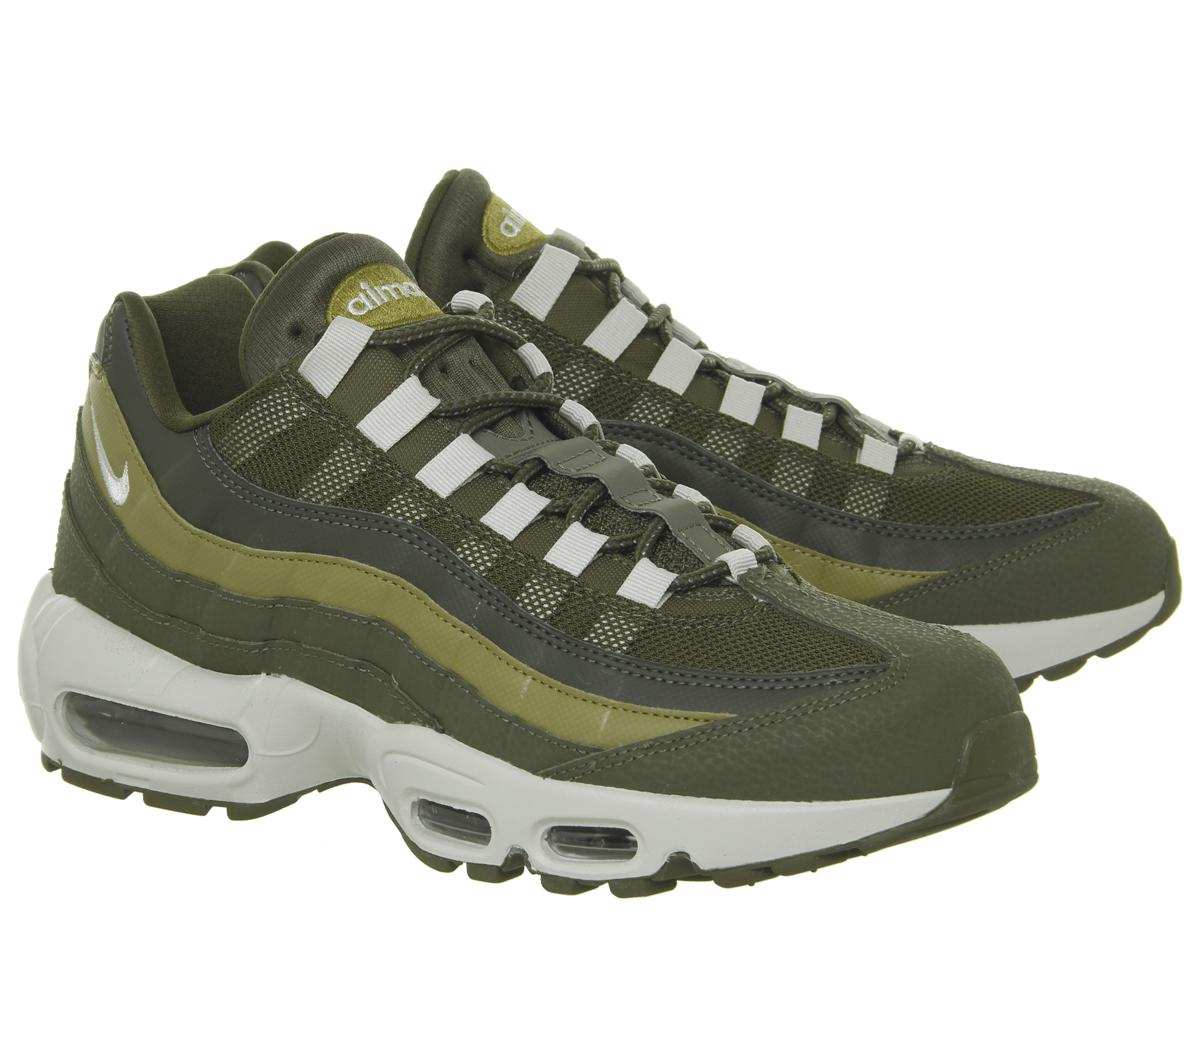 c715470758 Nike - Green Air Max 95 Trainers for Men - Lyst. View fullscreen